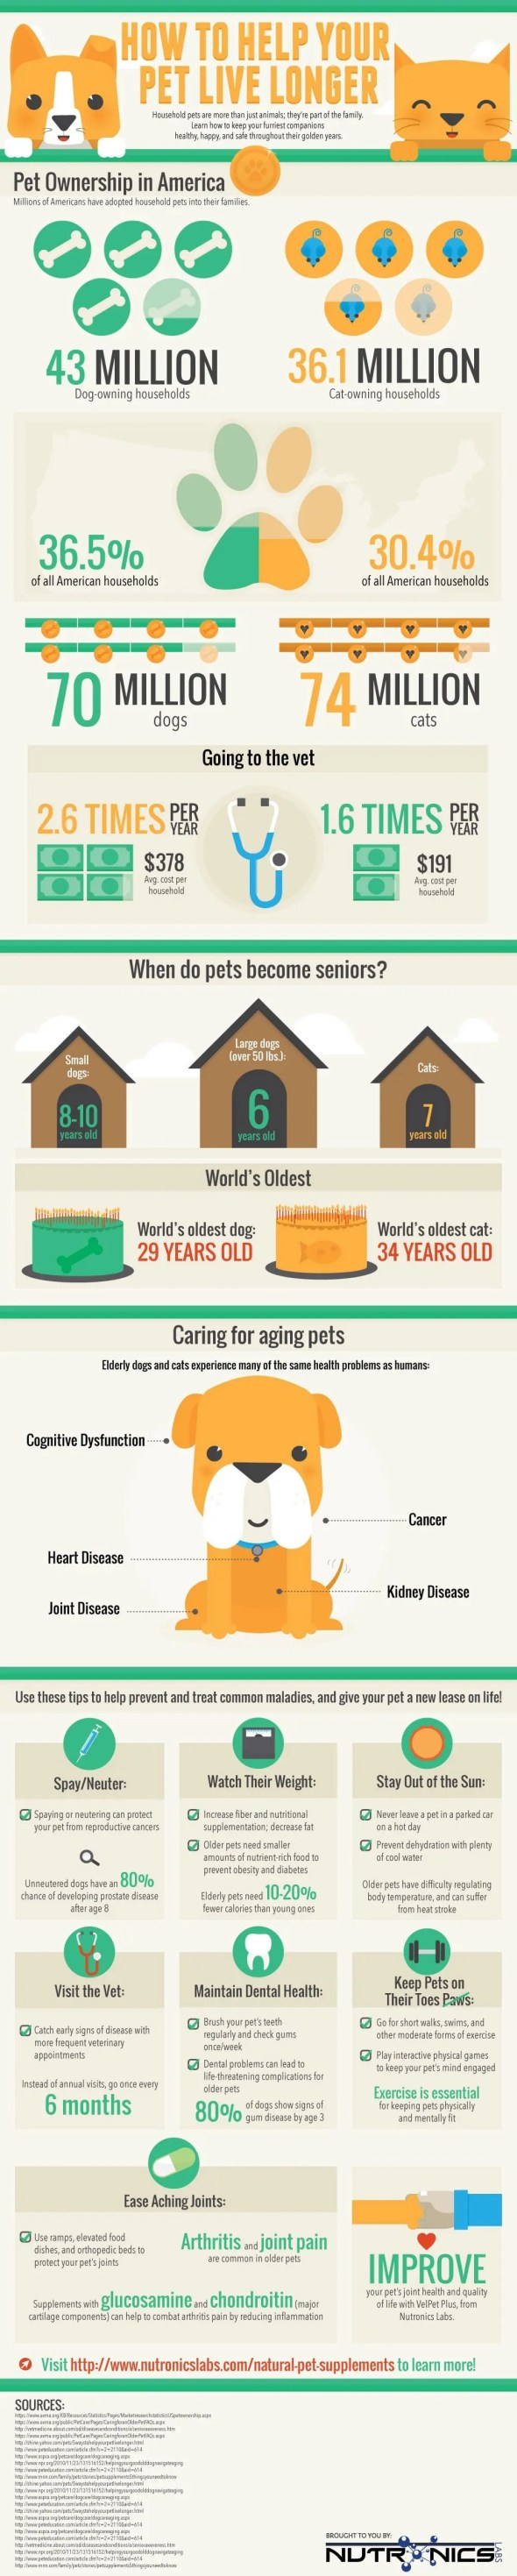 Infographic: How To Help Your Pet Live Longer